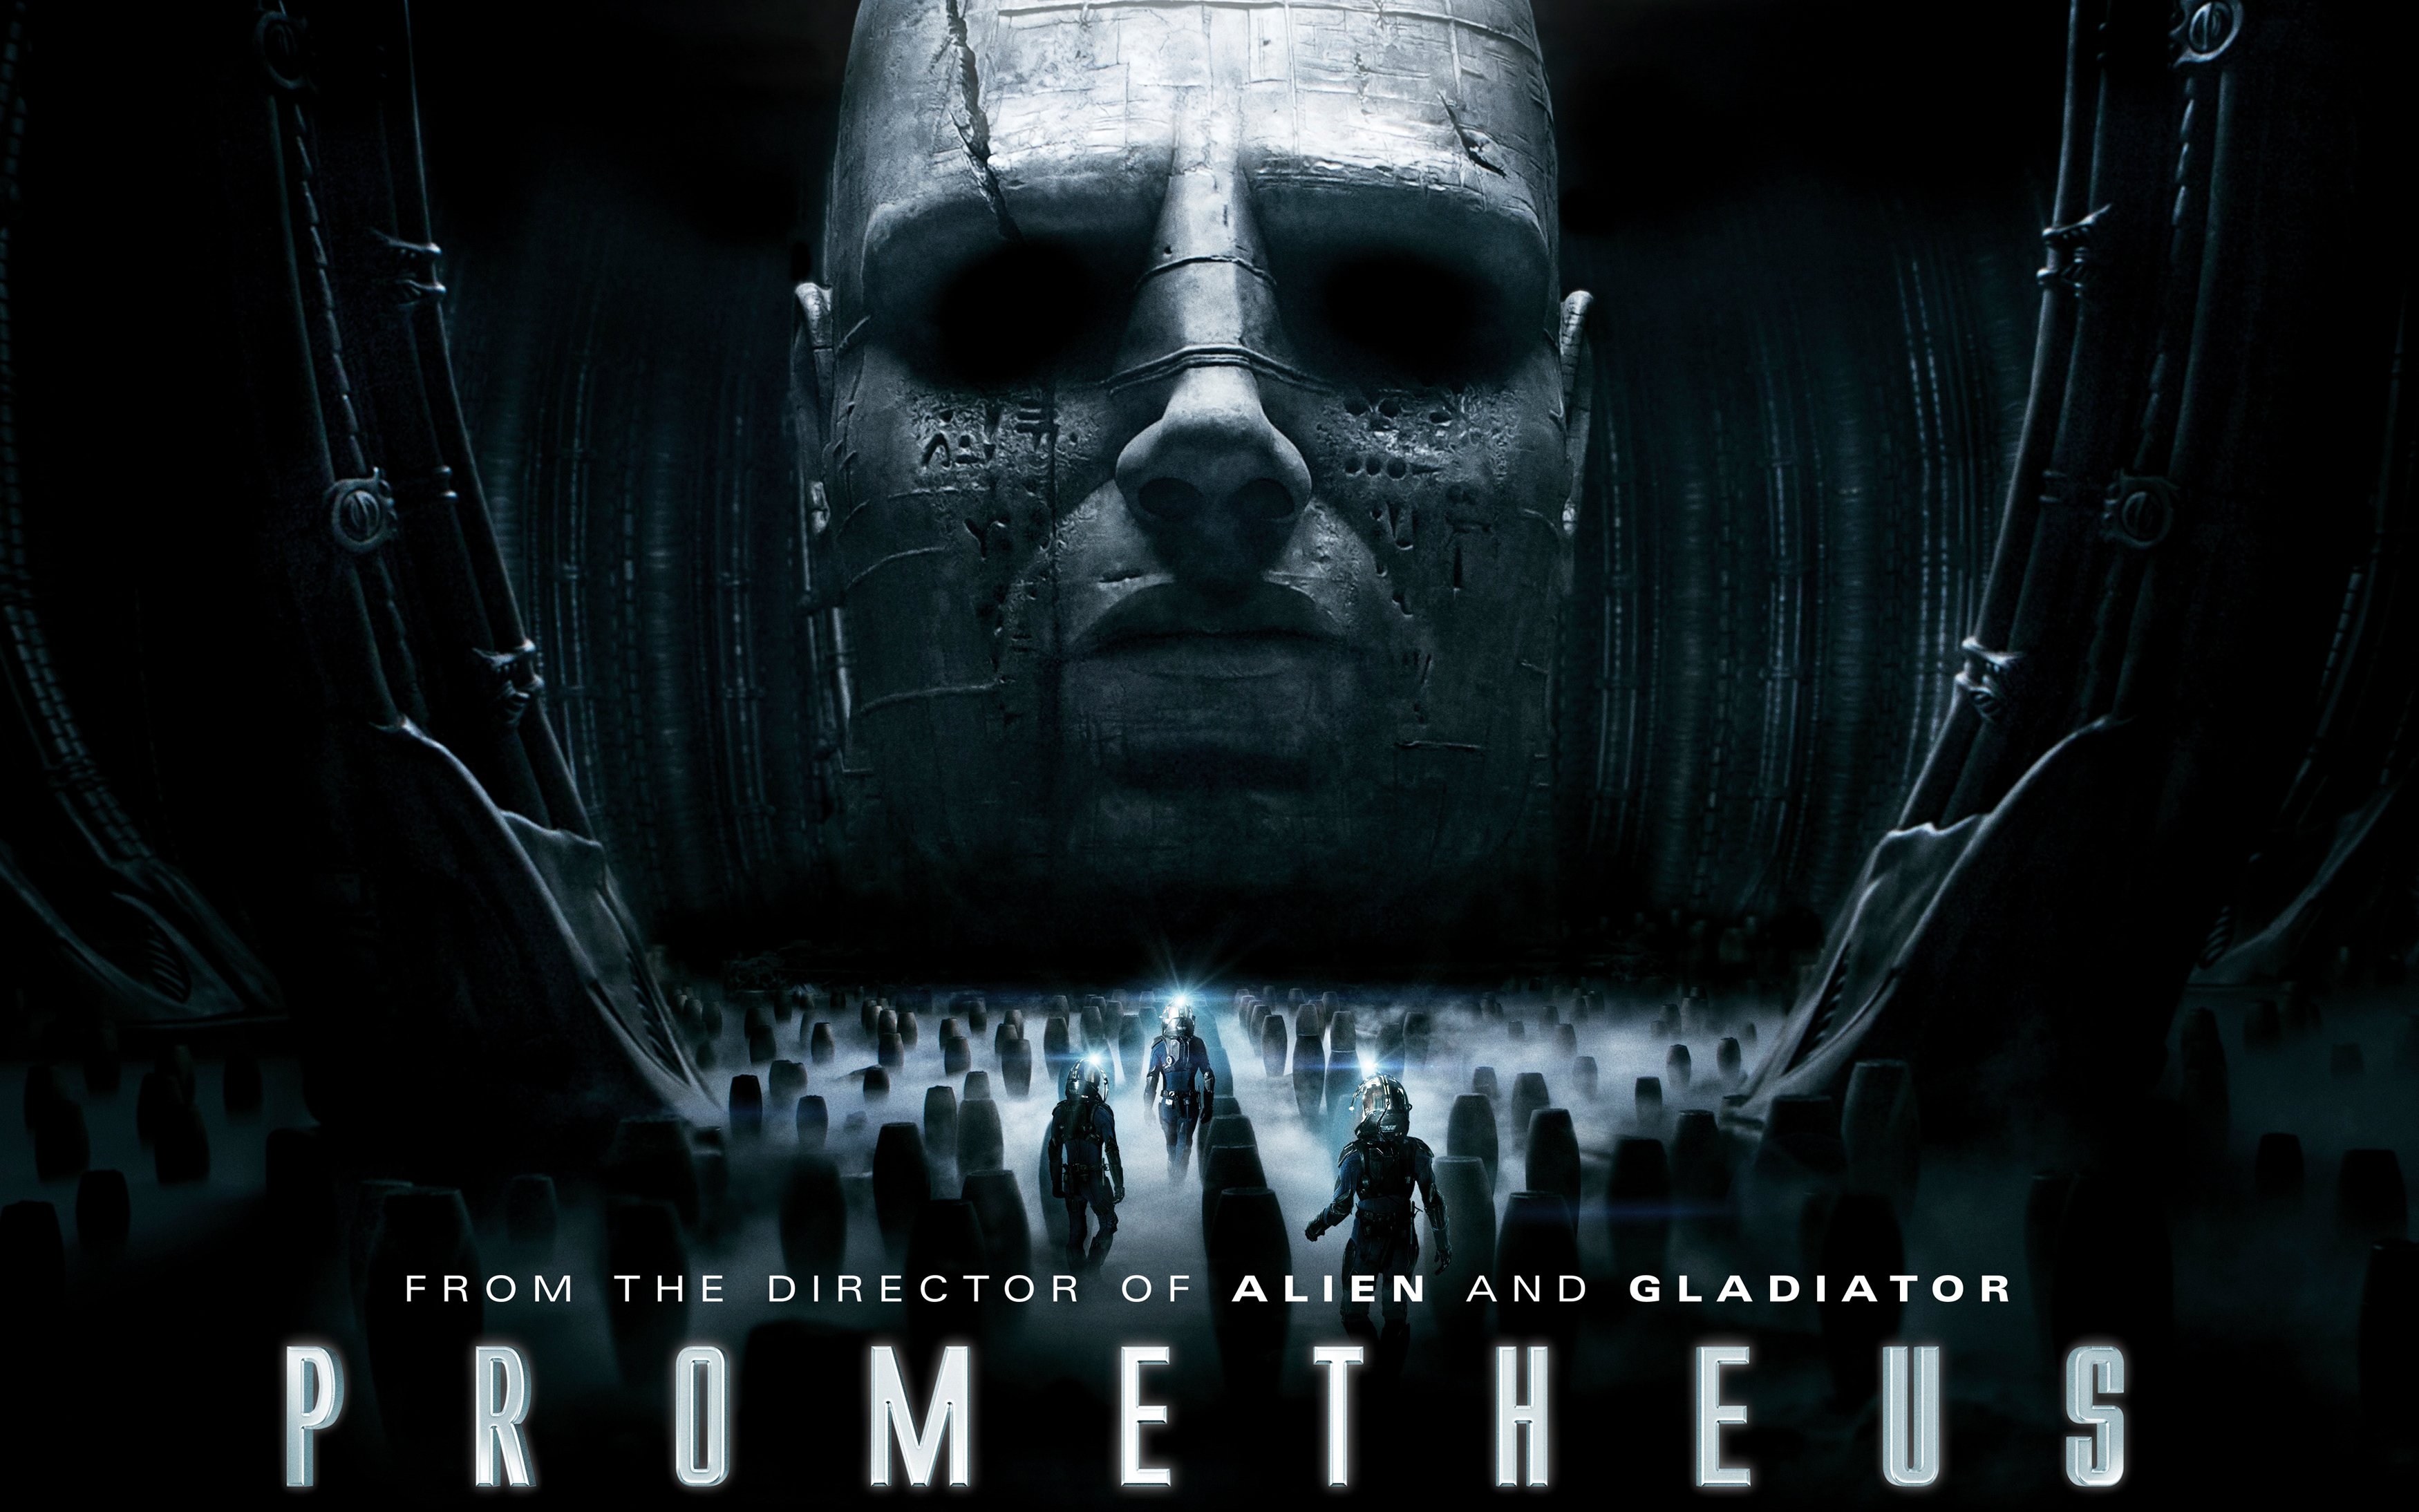 Prometheusdidnt Live Up To The Hype In My Book Seans